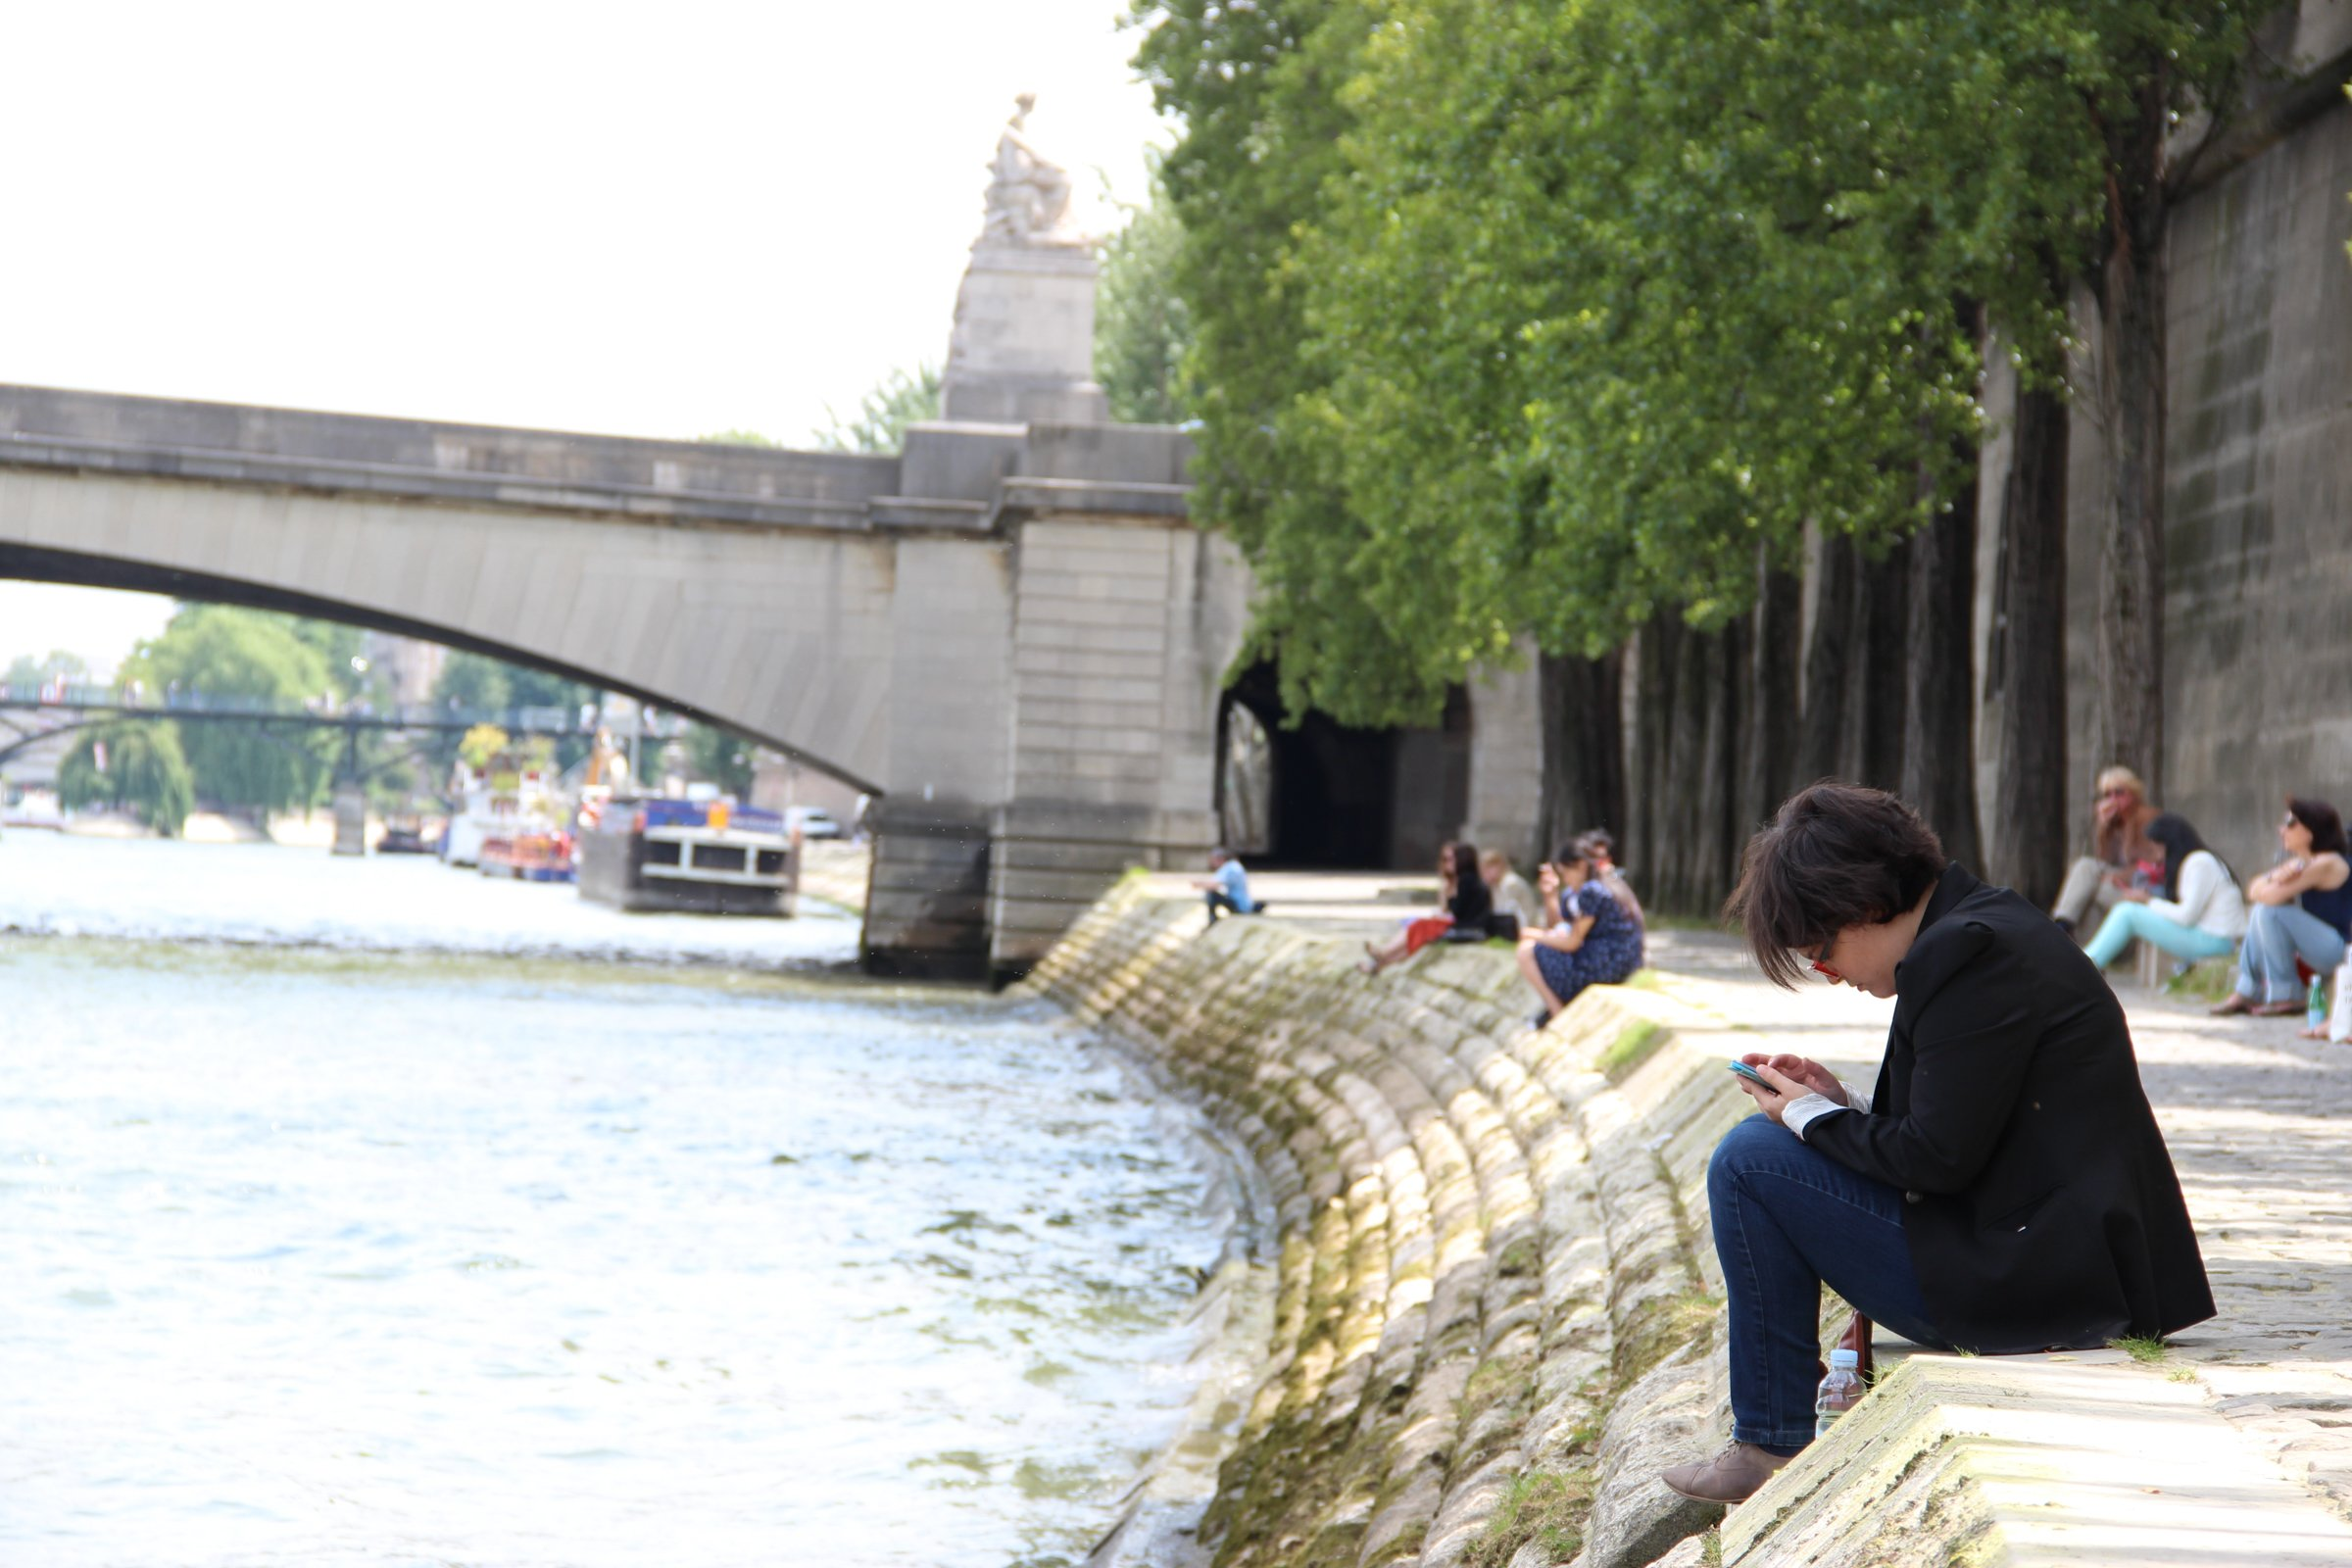 Man on Phone Sitting by River Bank